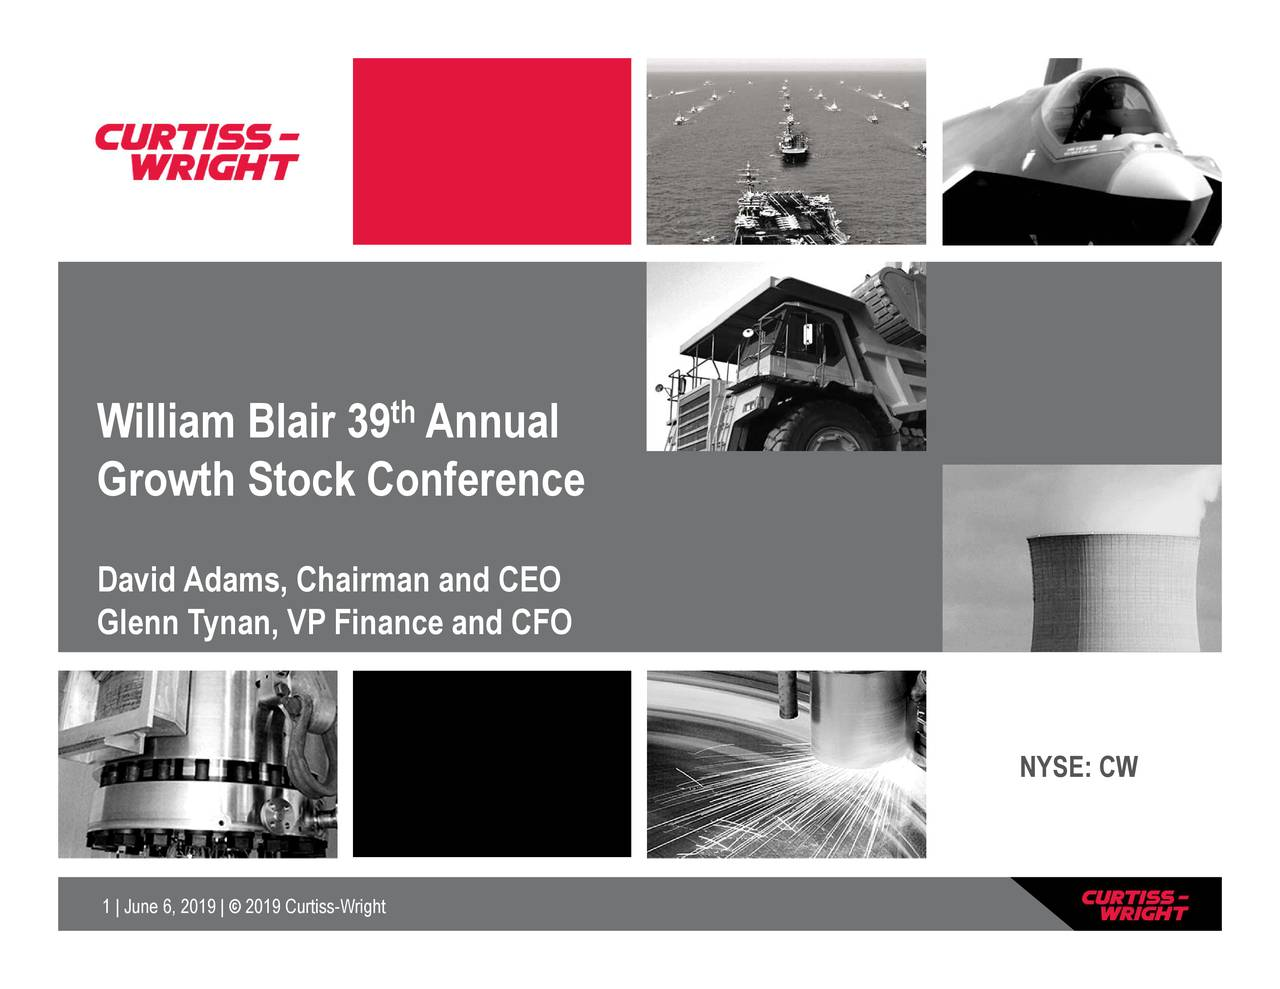 Curtiss-Wright (CW) Presents At William Blair Growth Stock Conference - Slideshow